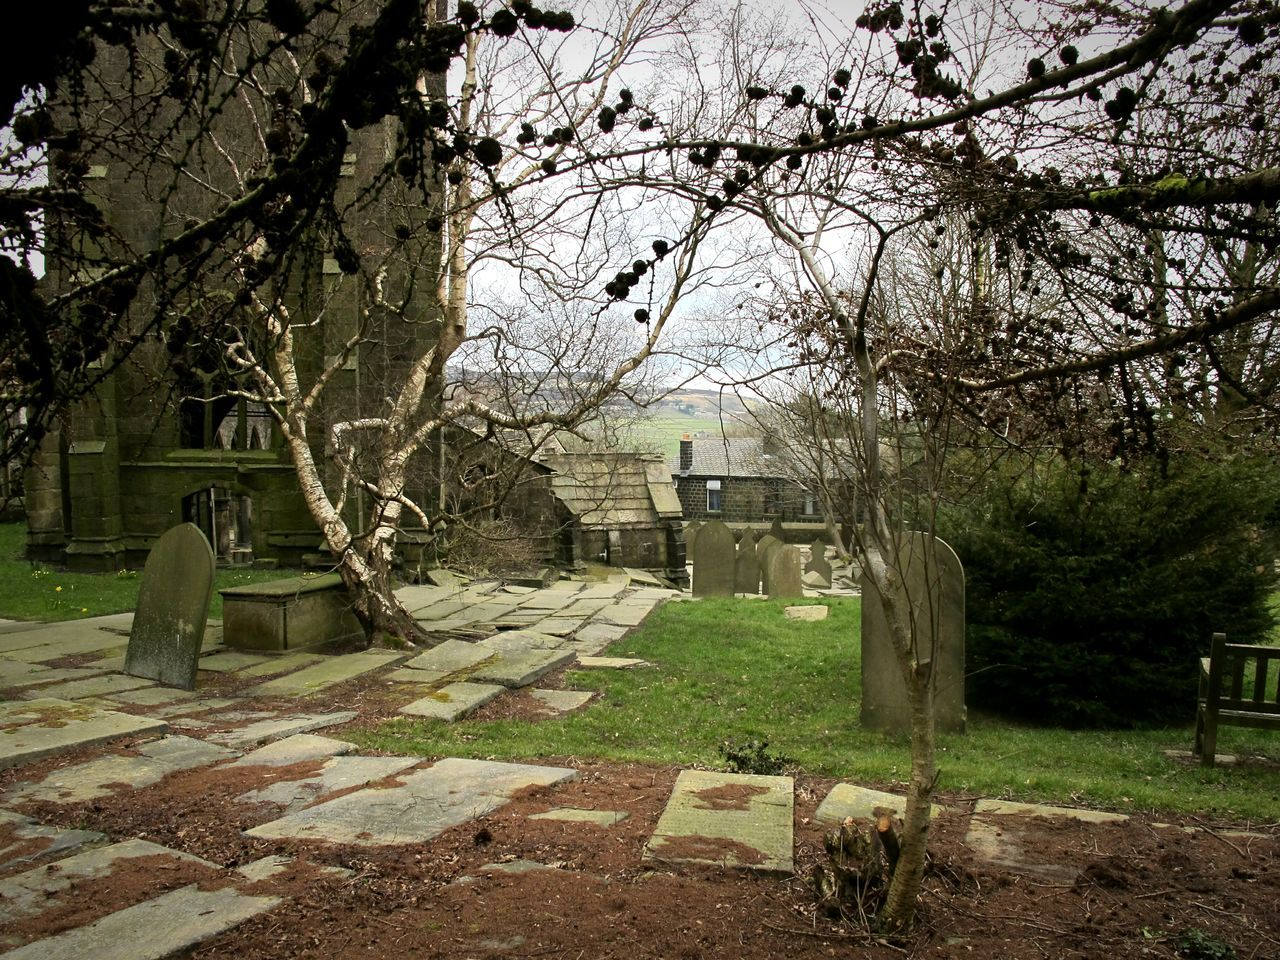 tombstone, cemetery, tree, memorial, graveyard, gravestone, grave, no people, outdoors, cross, day, tranquility, grass, built structure, branch, bare tree, nature, architecture, sky